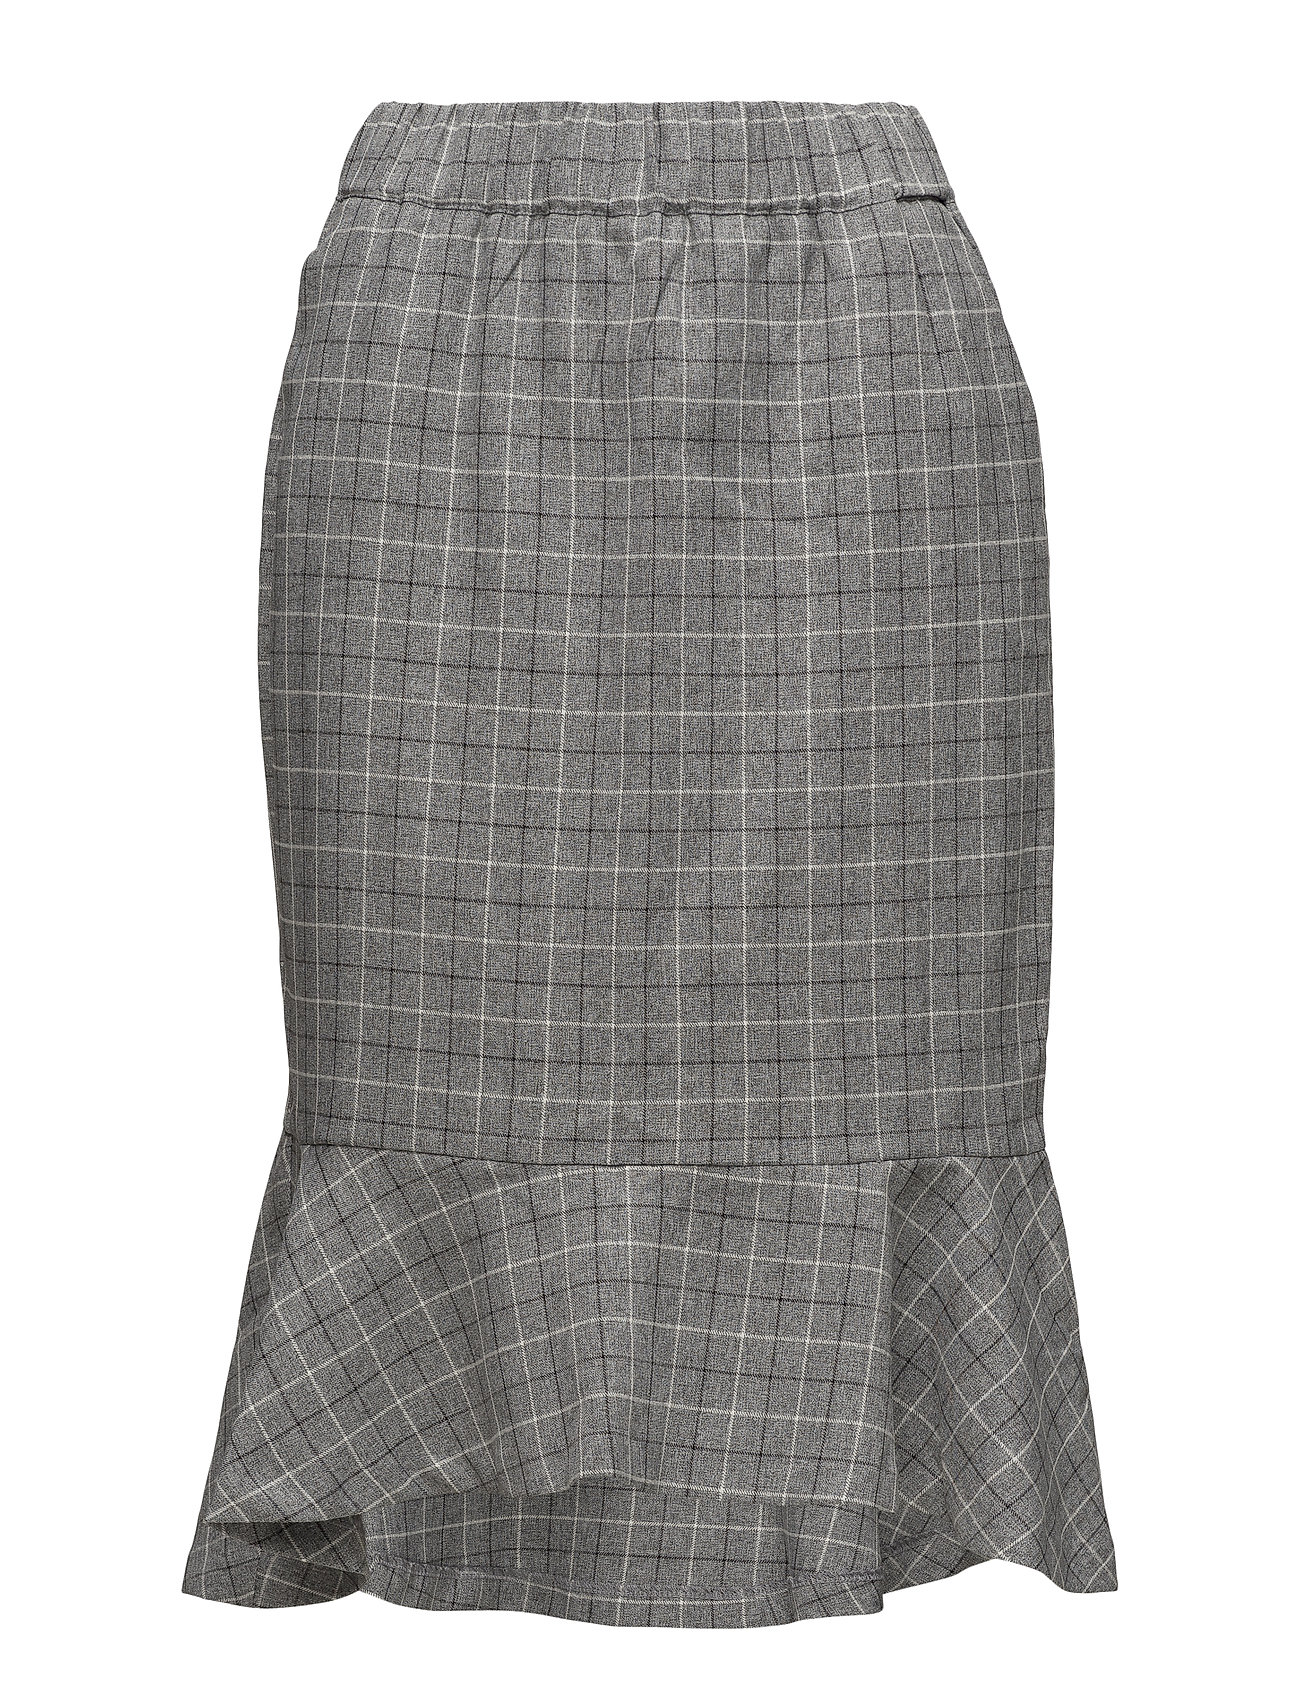 2nd One Alma 078 Skirt - SPORTY CHECK